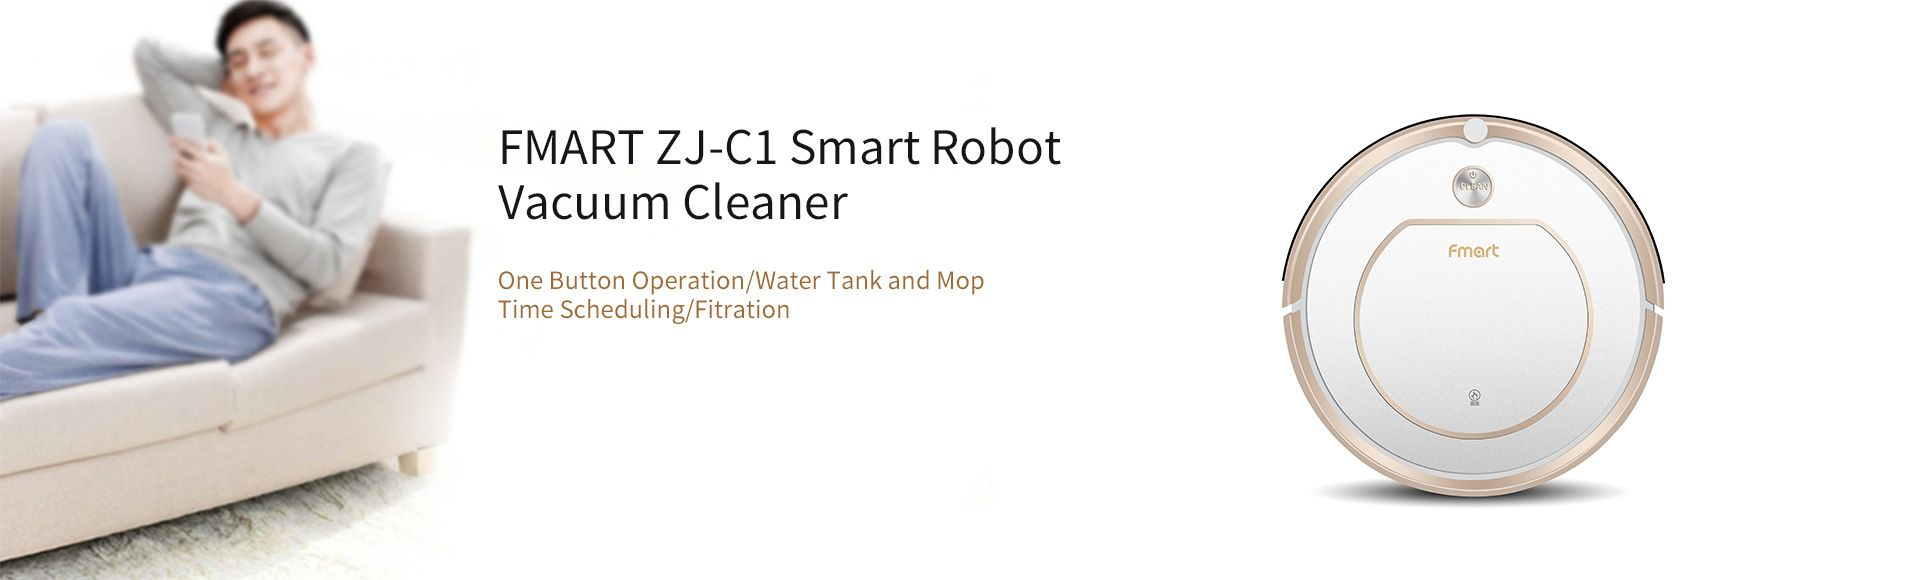 FMART ZJ-C1 Smart Robot Vacuum Cleaner   - One Button Operation Filtration Water Tank and Mop Time Scheduling